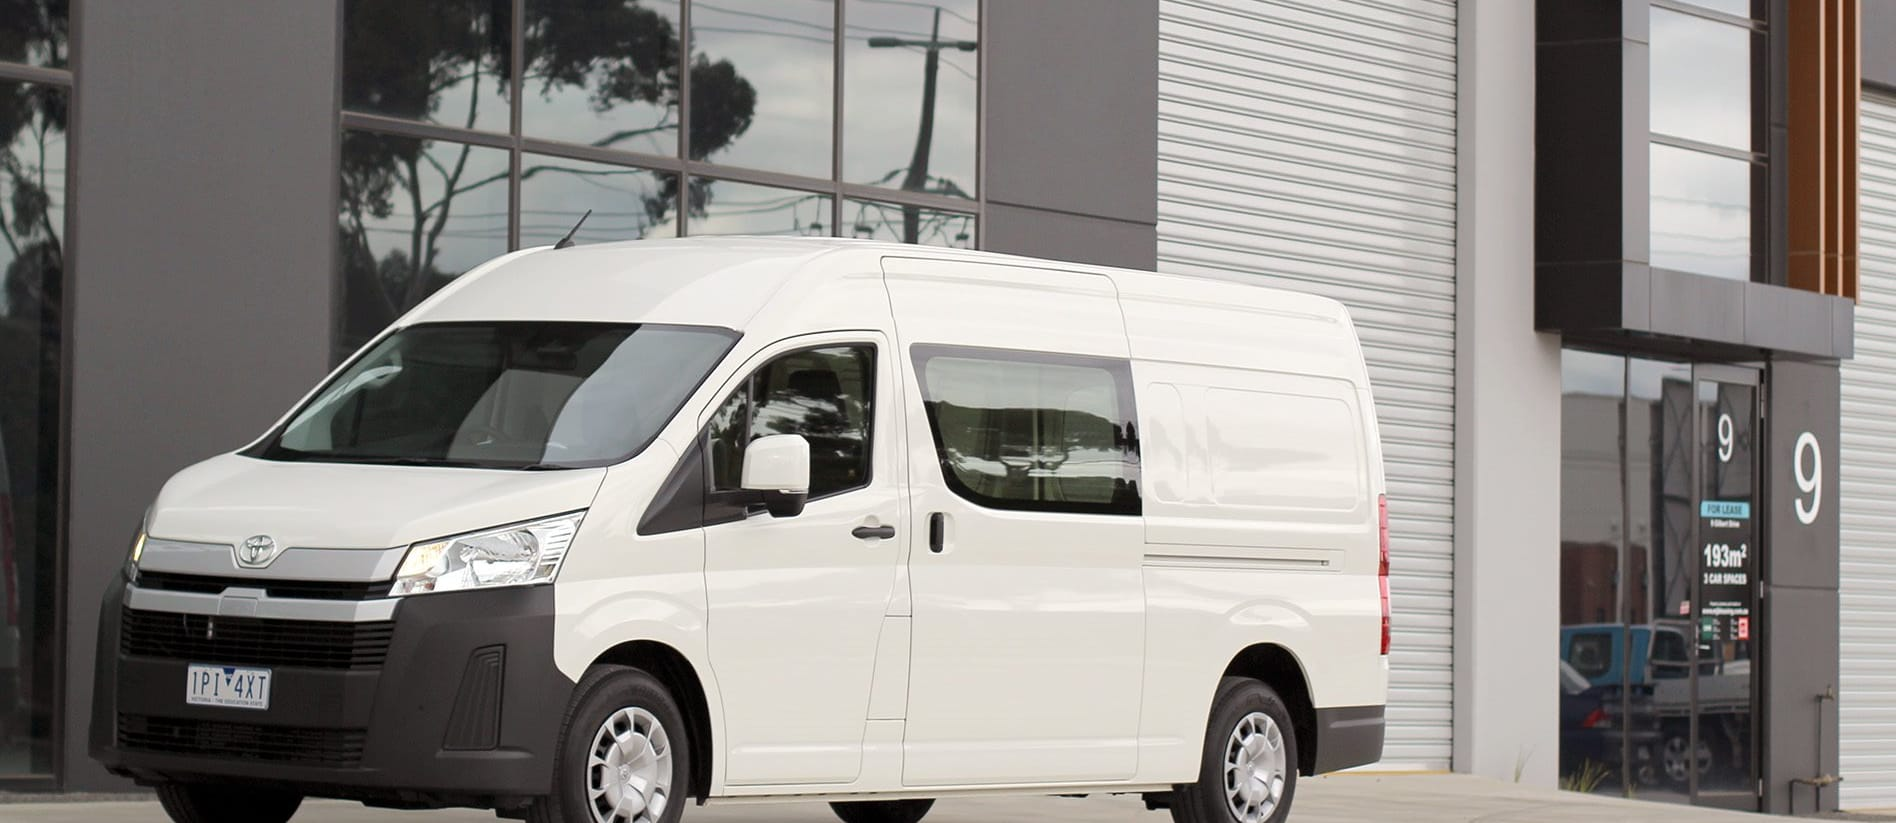 Toyota Hiace SLWB diesel automatic review